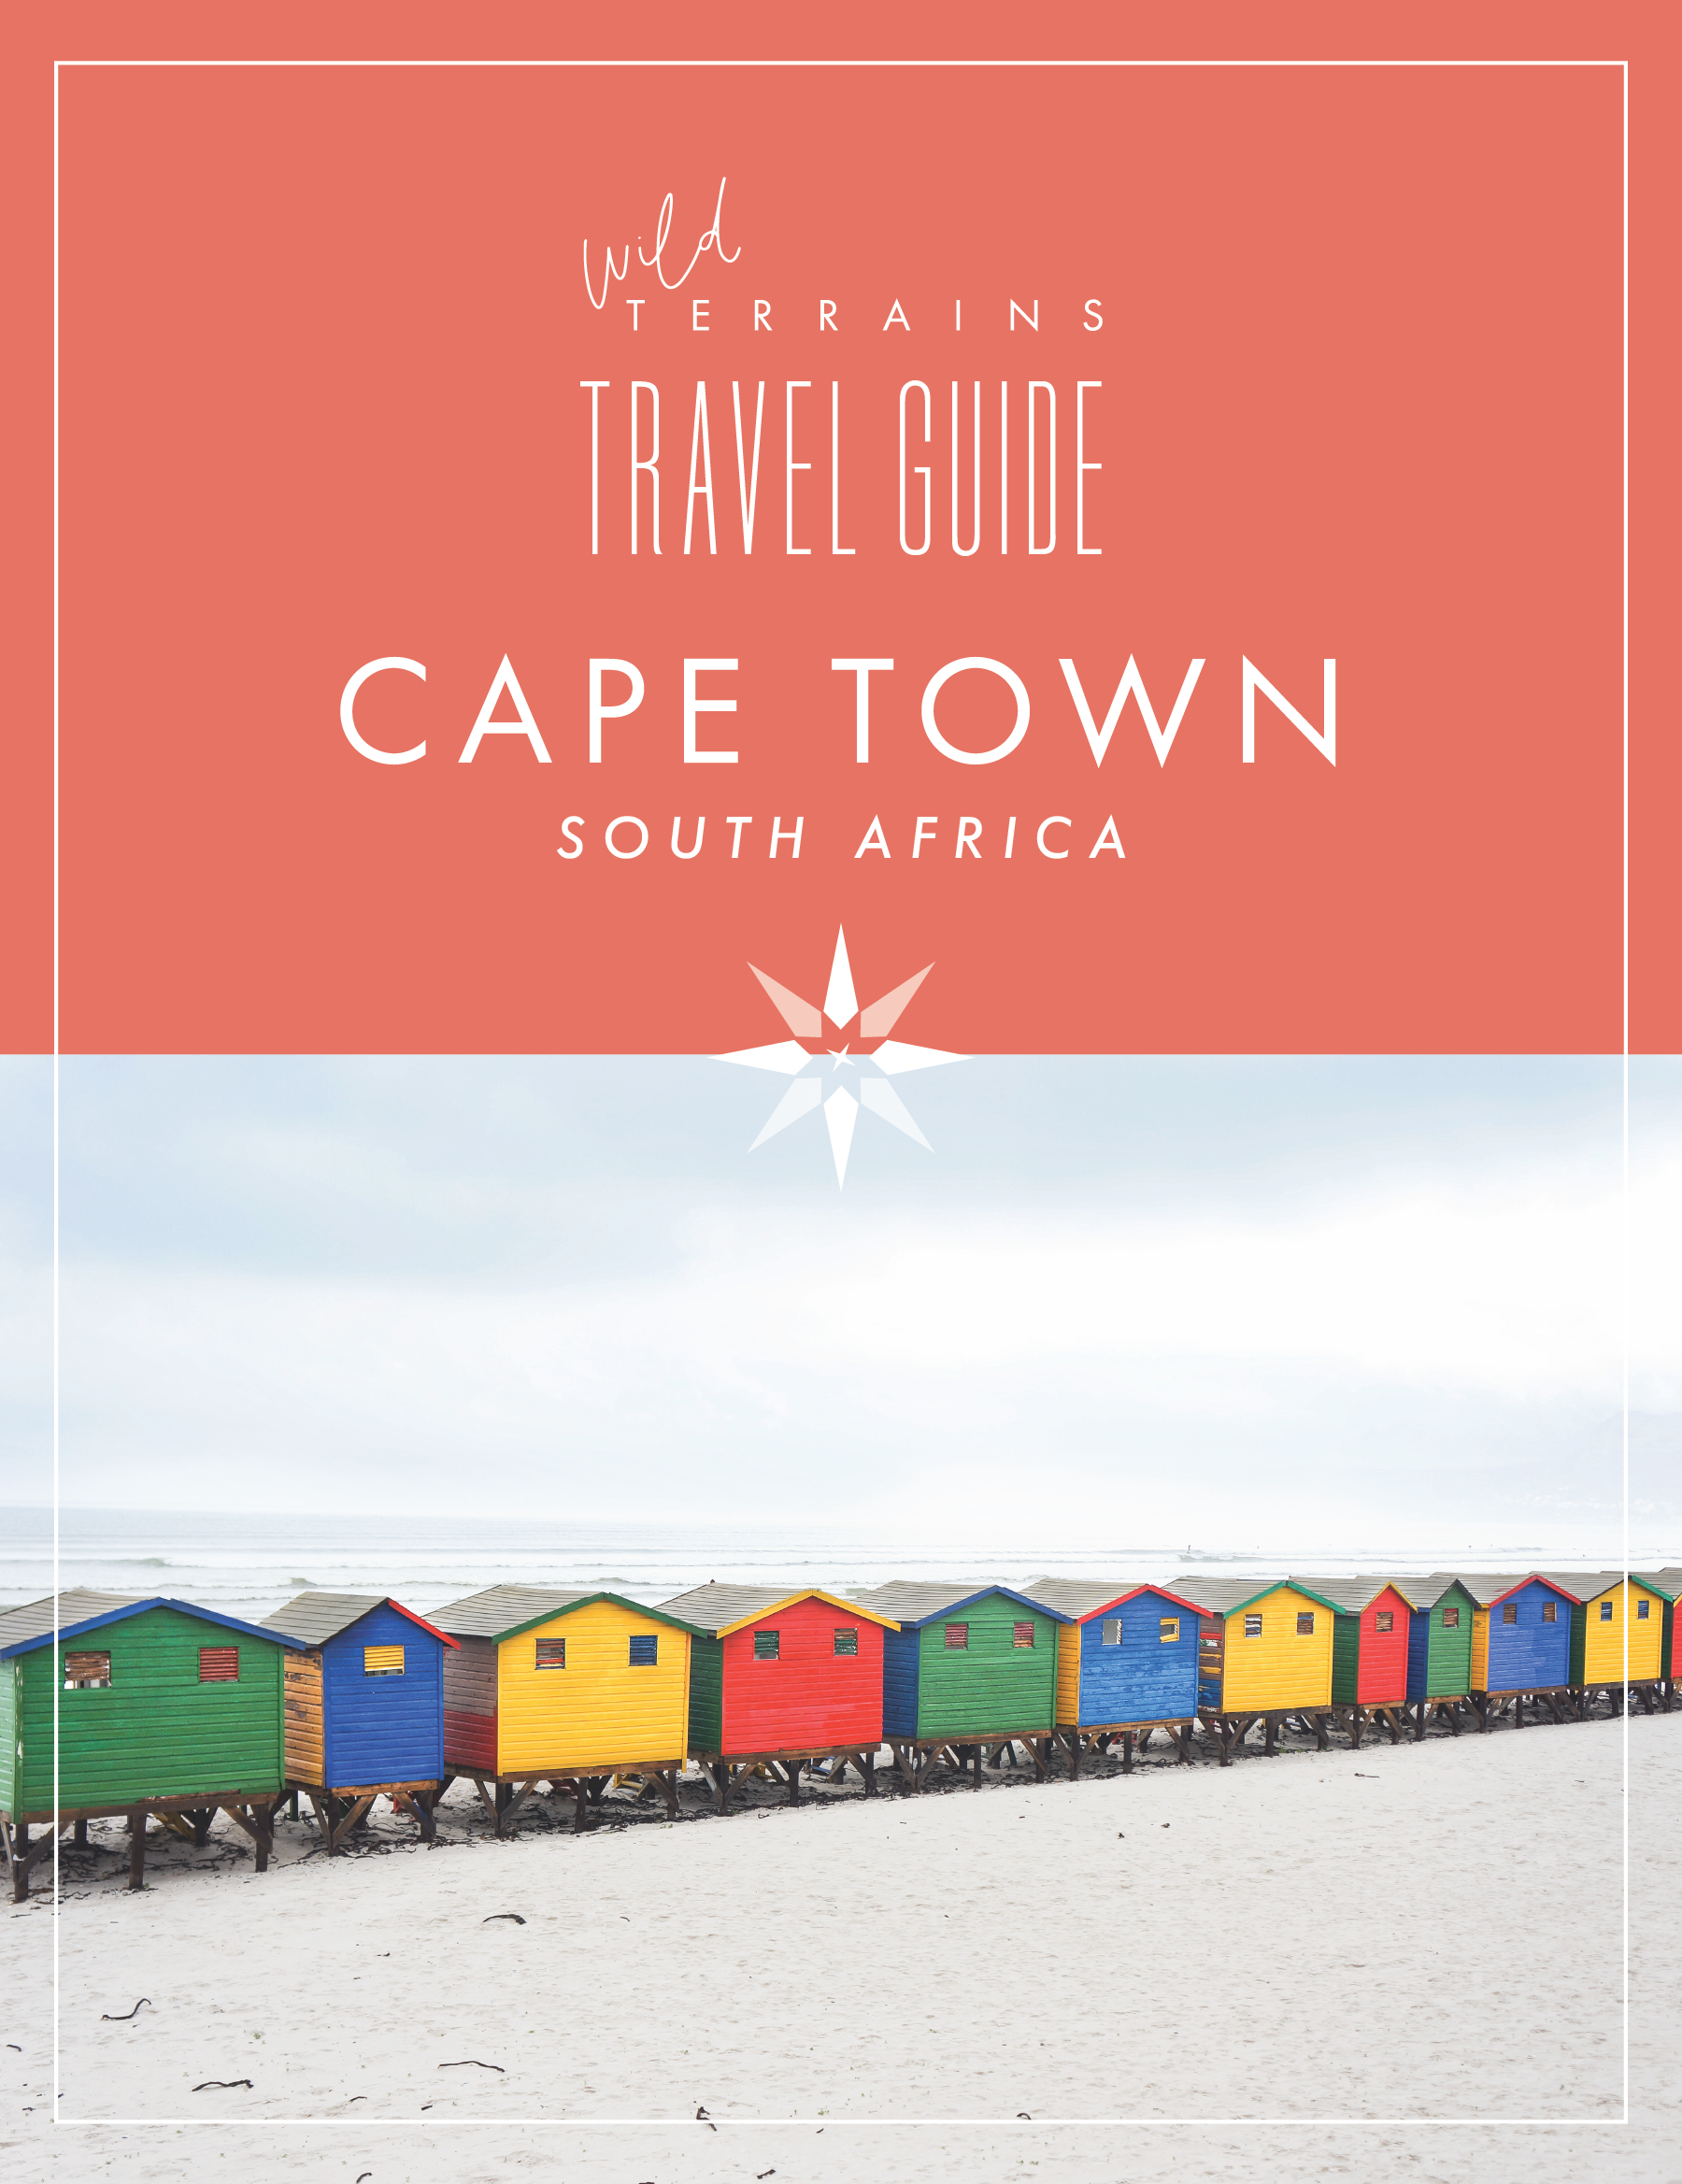 Pin_SouthAfrica_TravelGuide-01.png